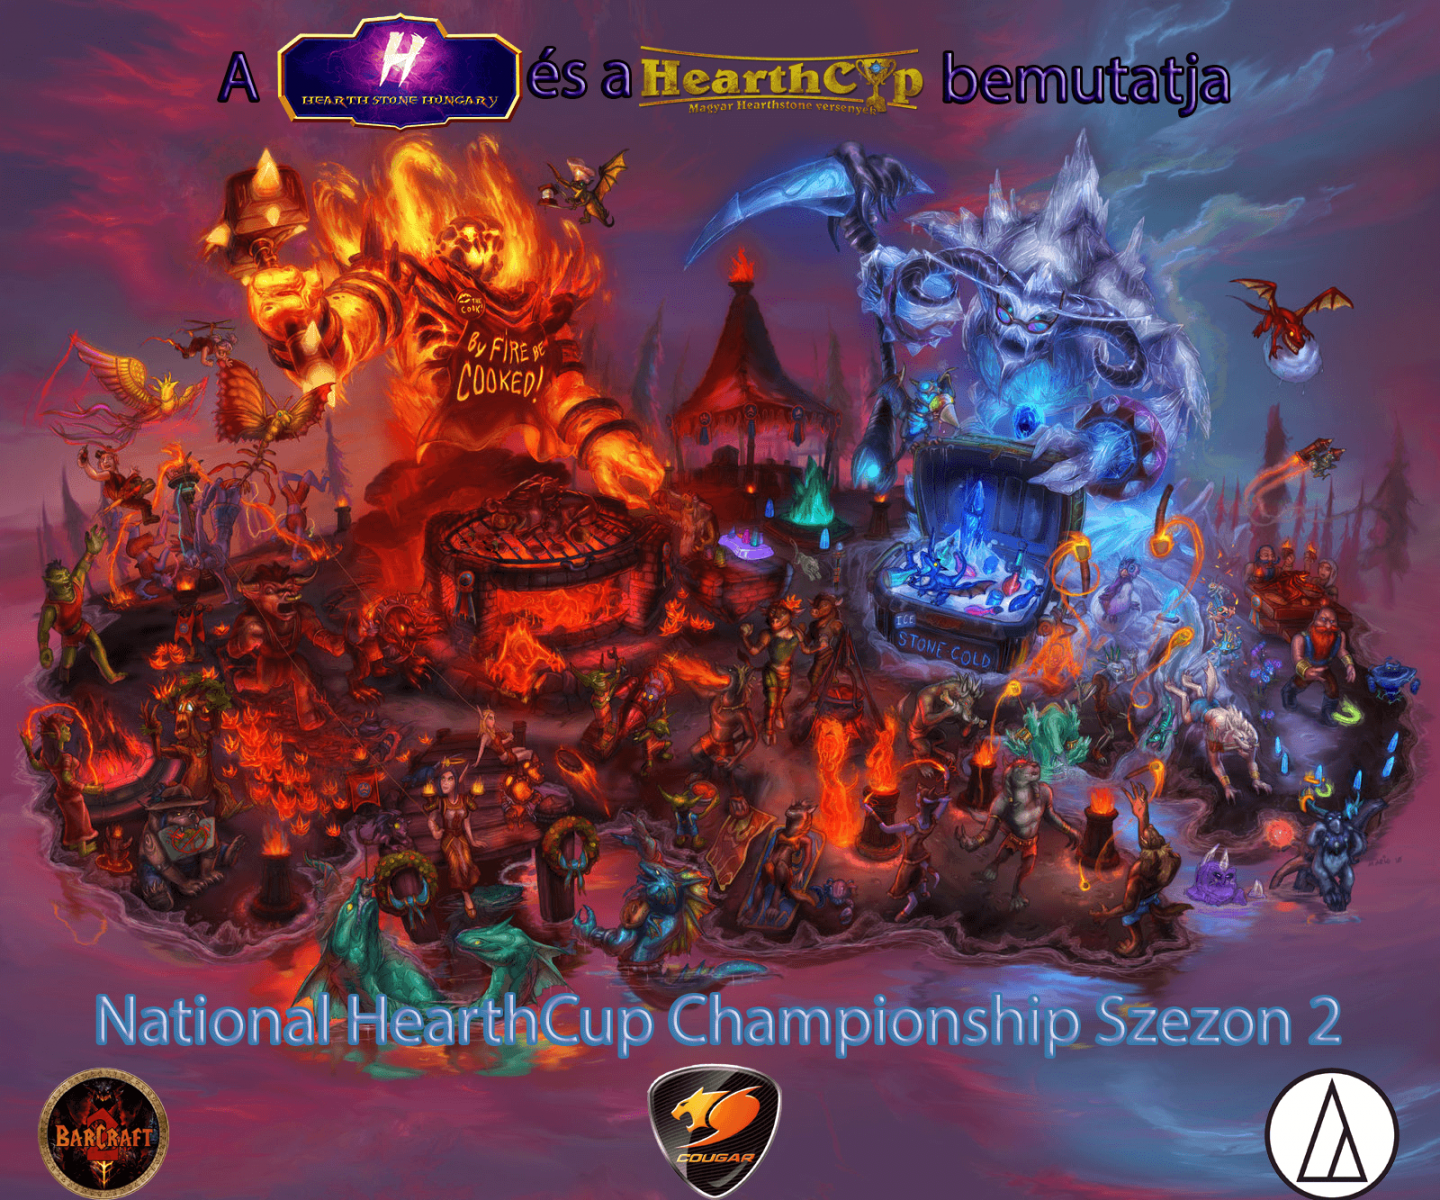 National HearthCup Championship